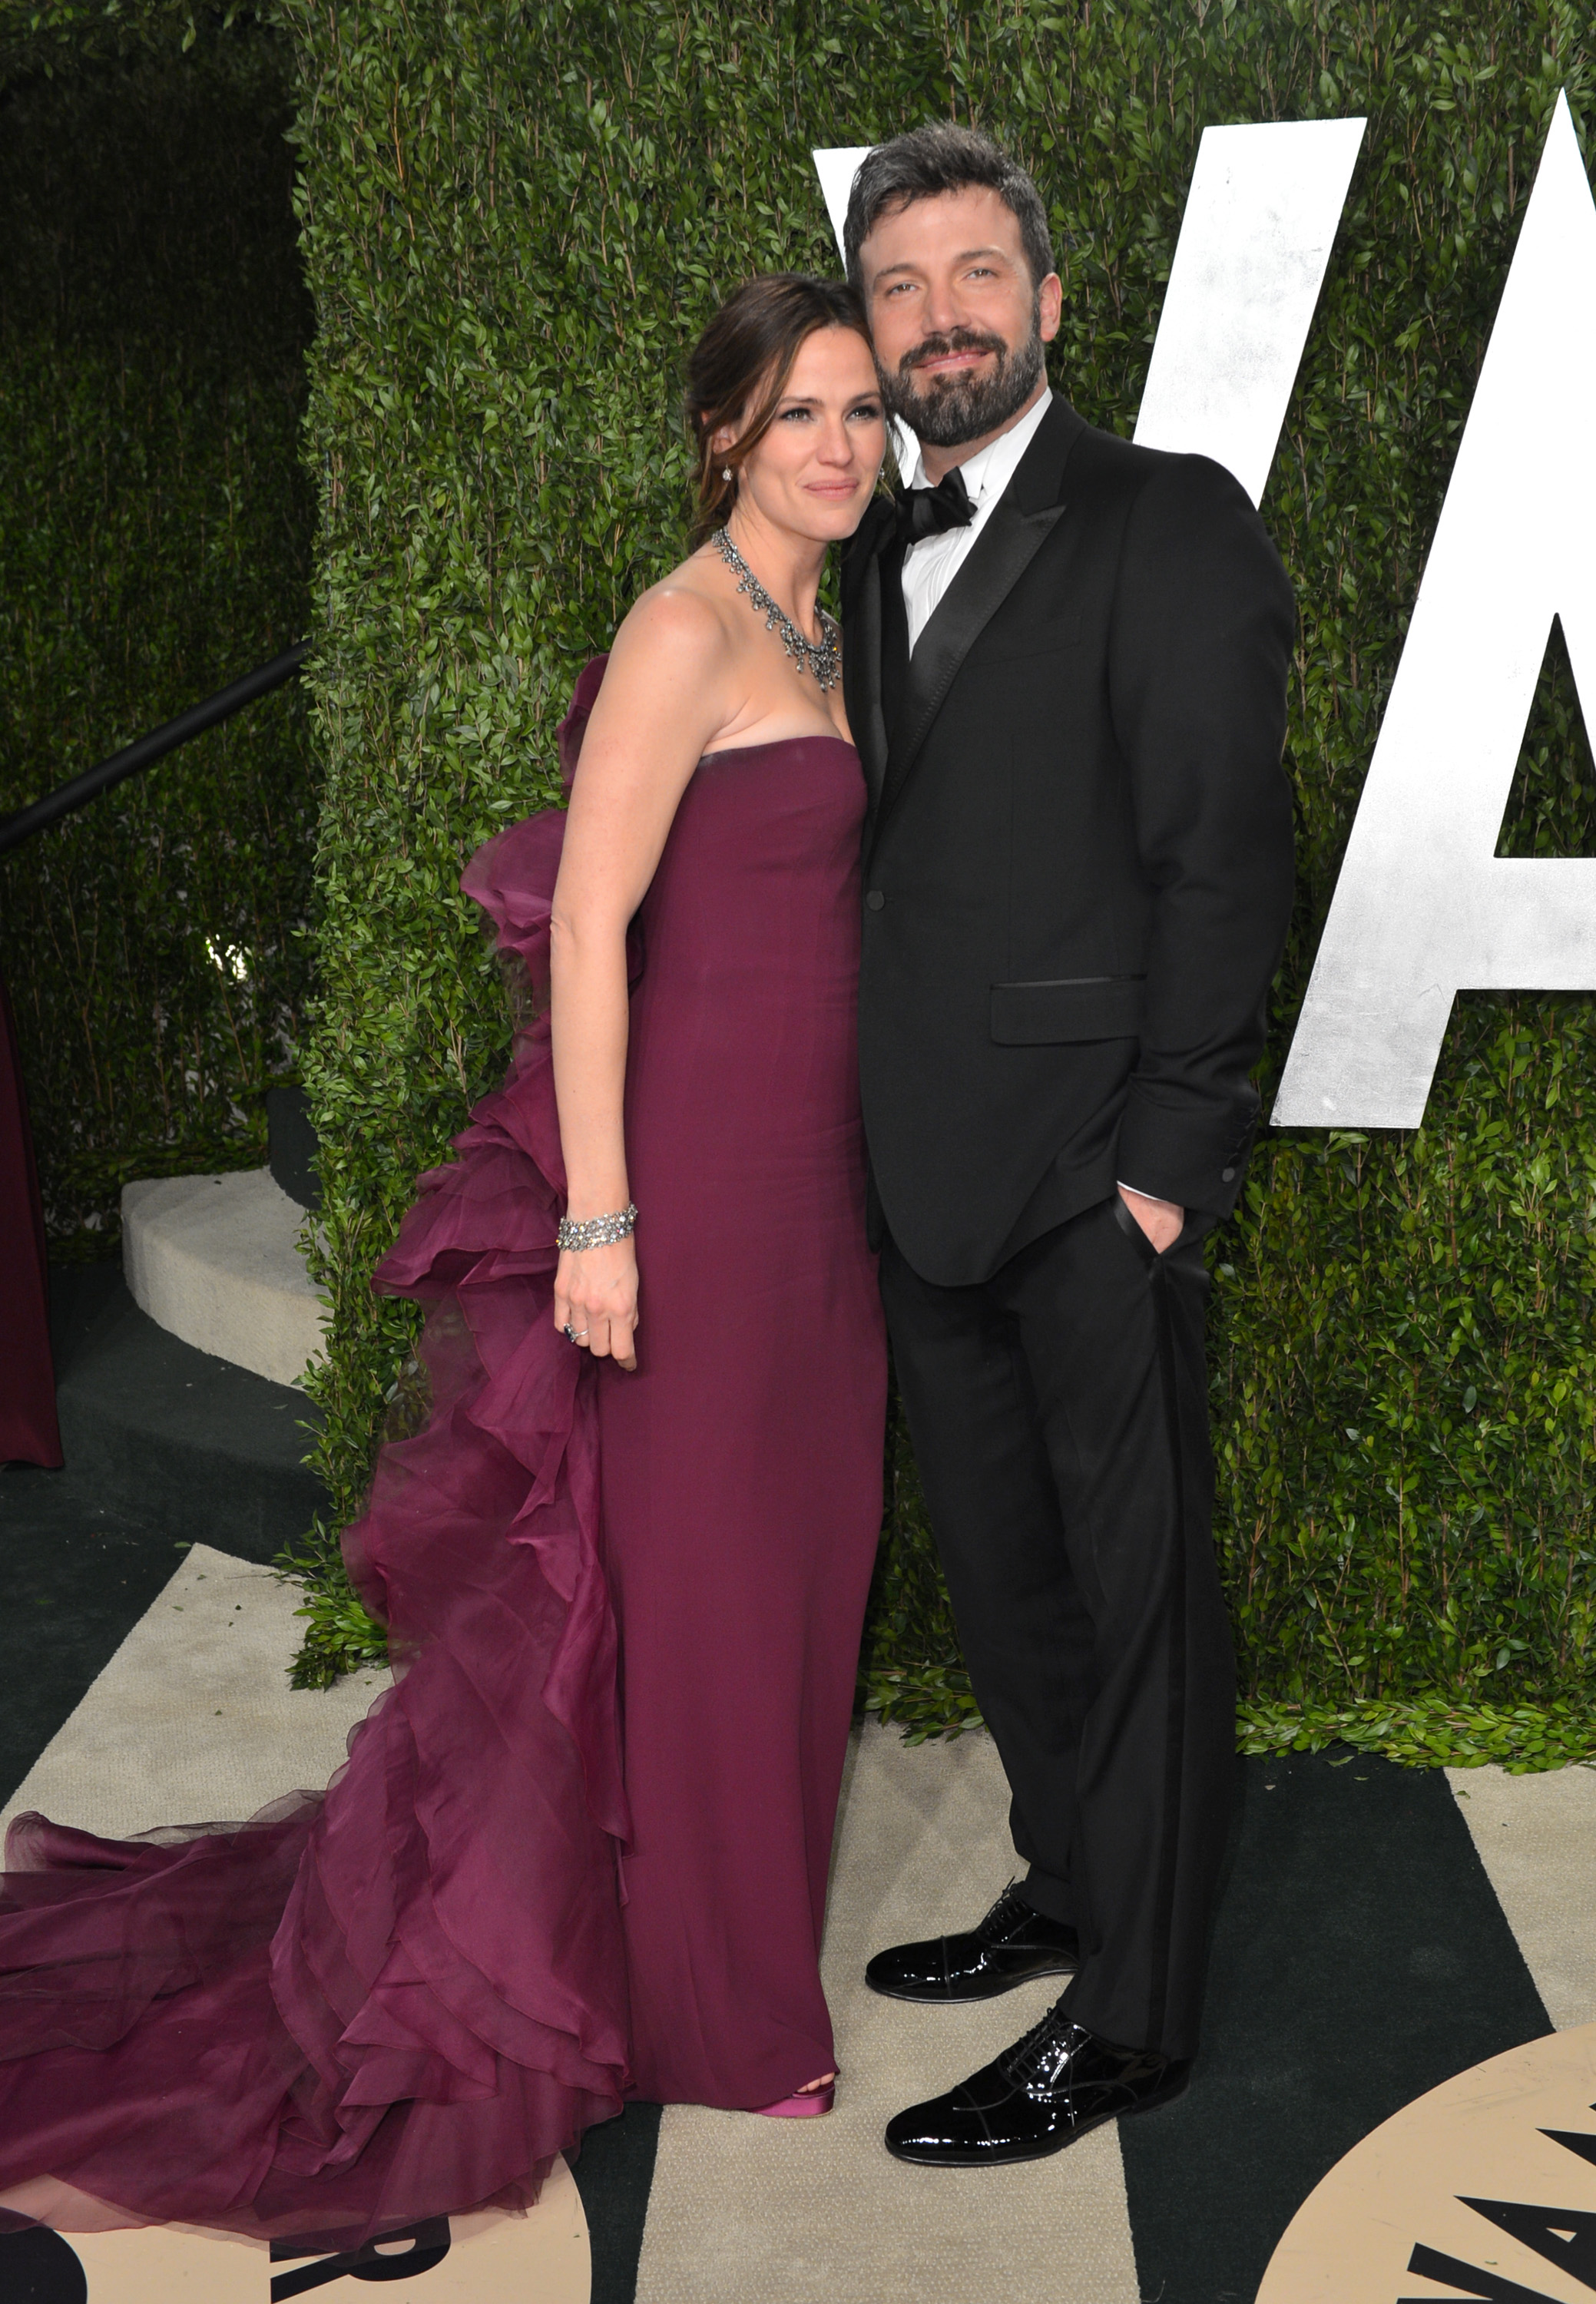 Ben Affleck and Jennifer Garner arrived at the Vanity Fair Oscars party.